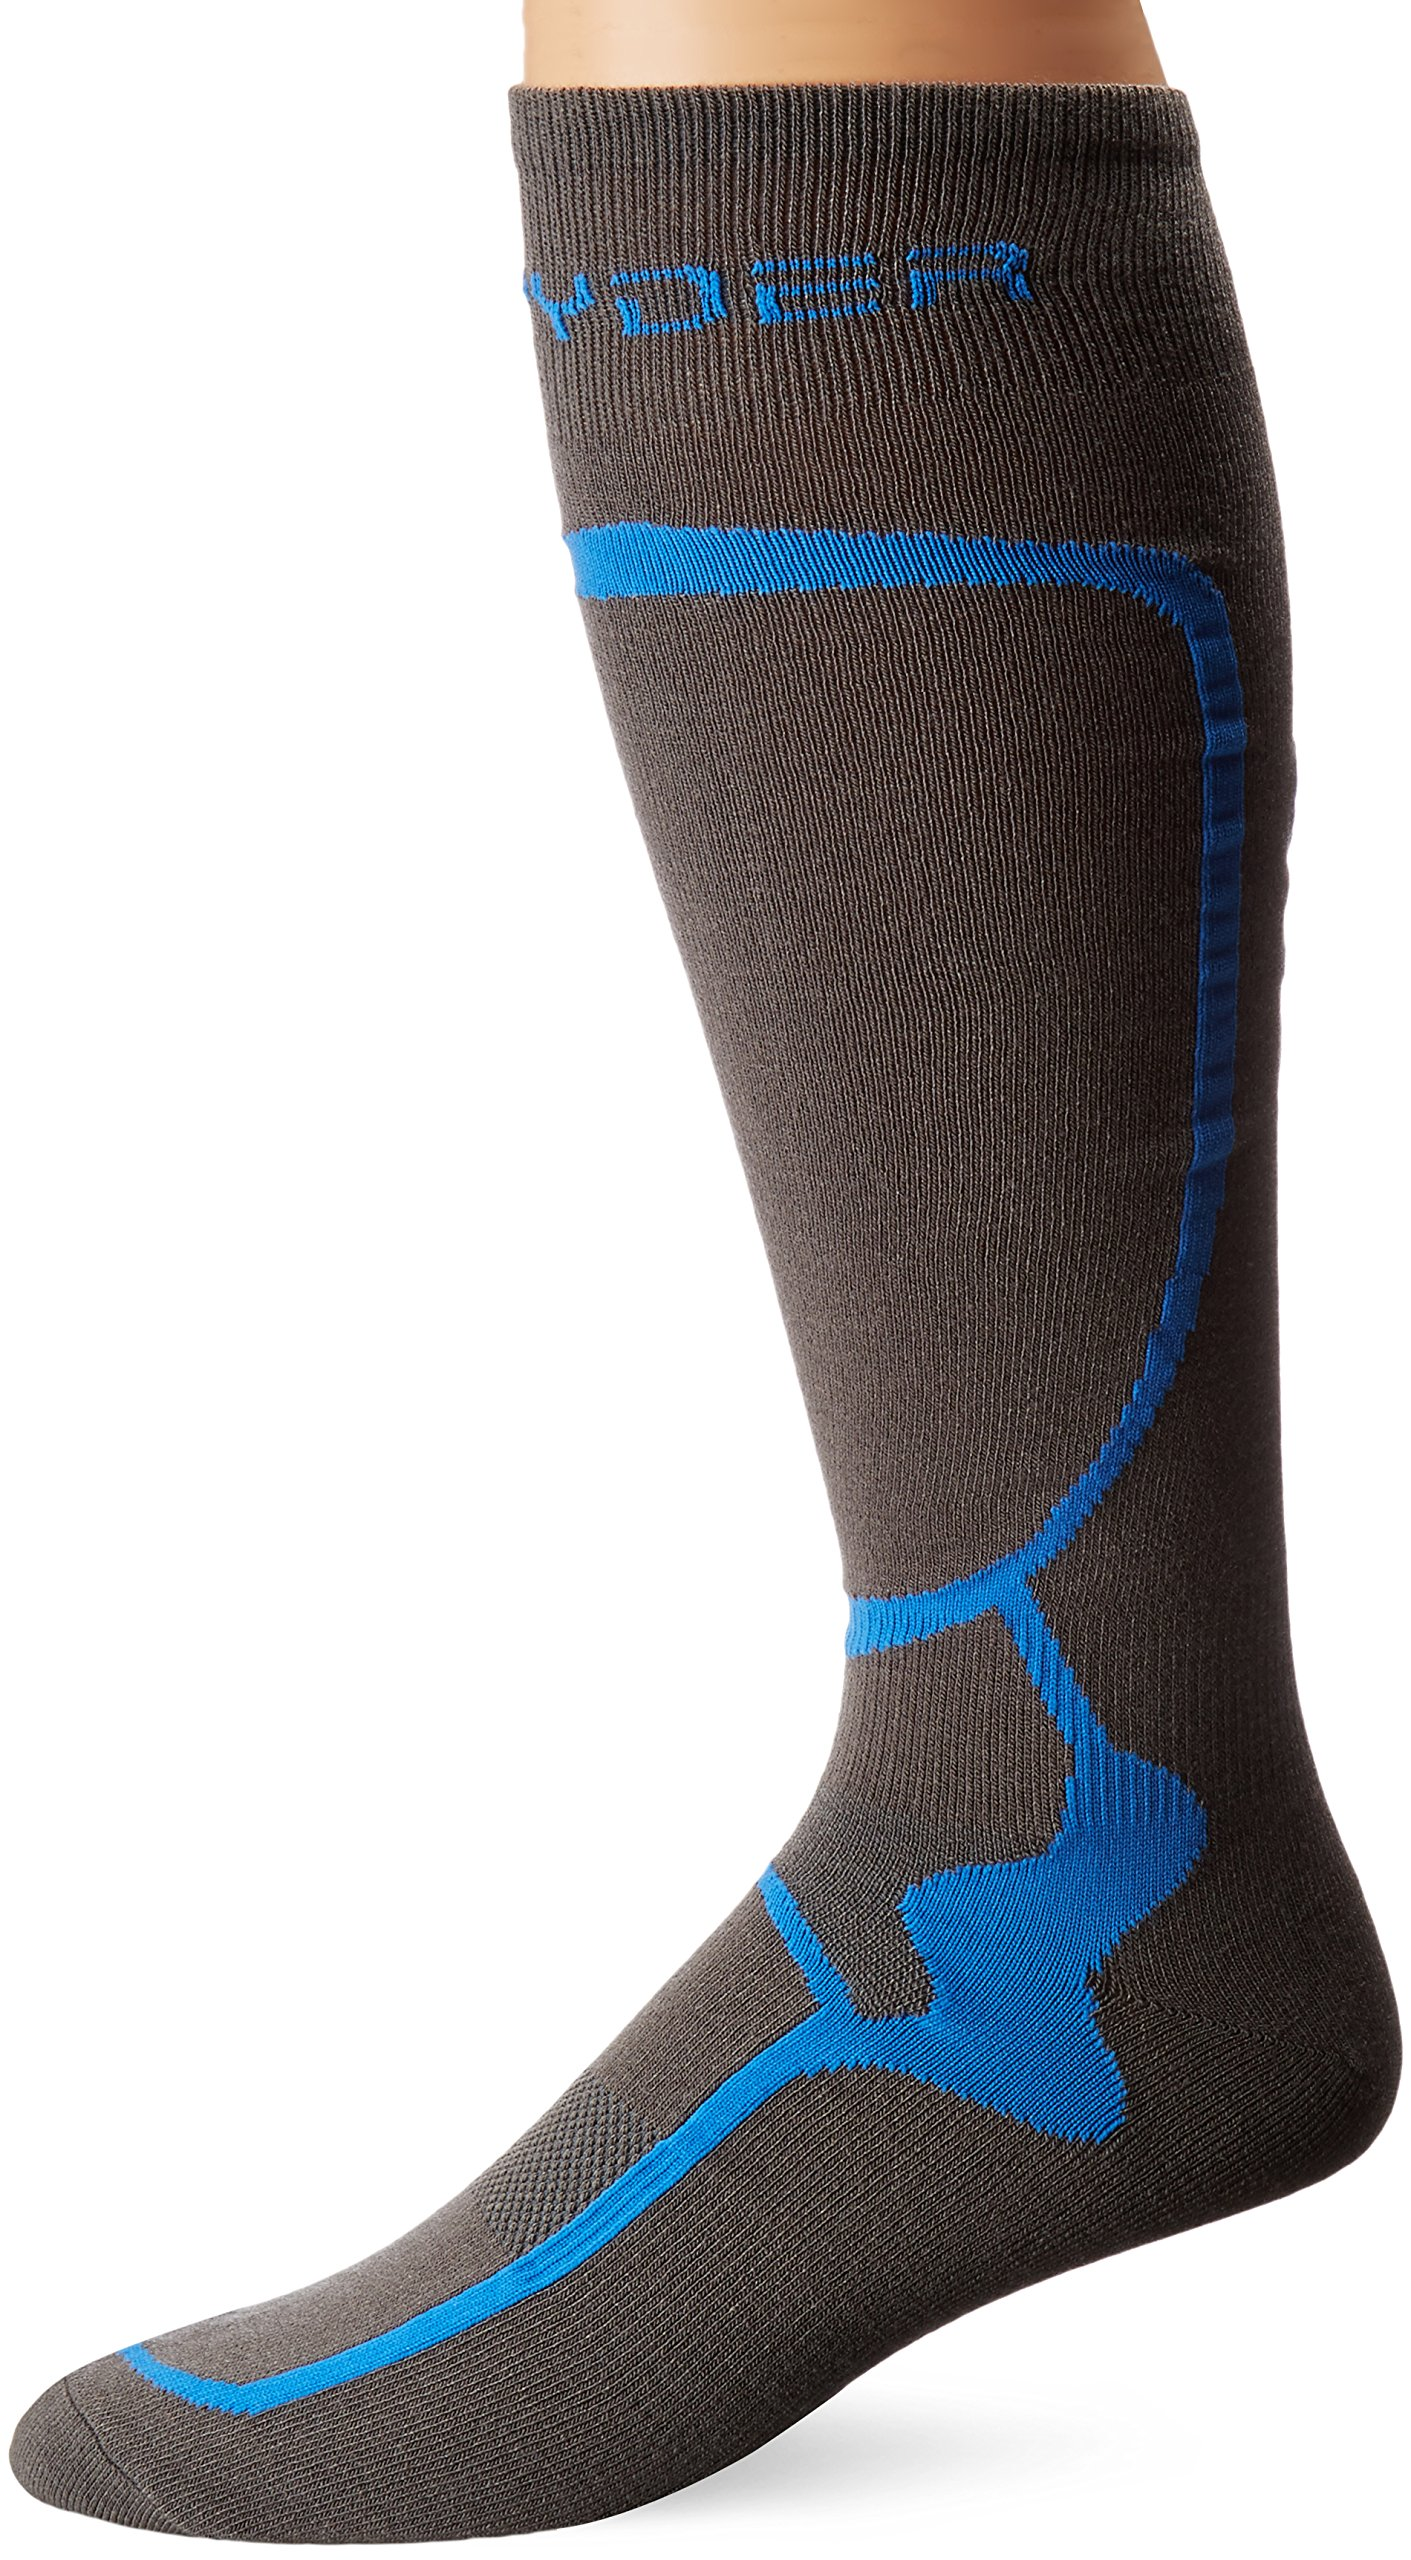 Spyder Men's Pro Liner Sock, Polar/French Blue, X-Large